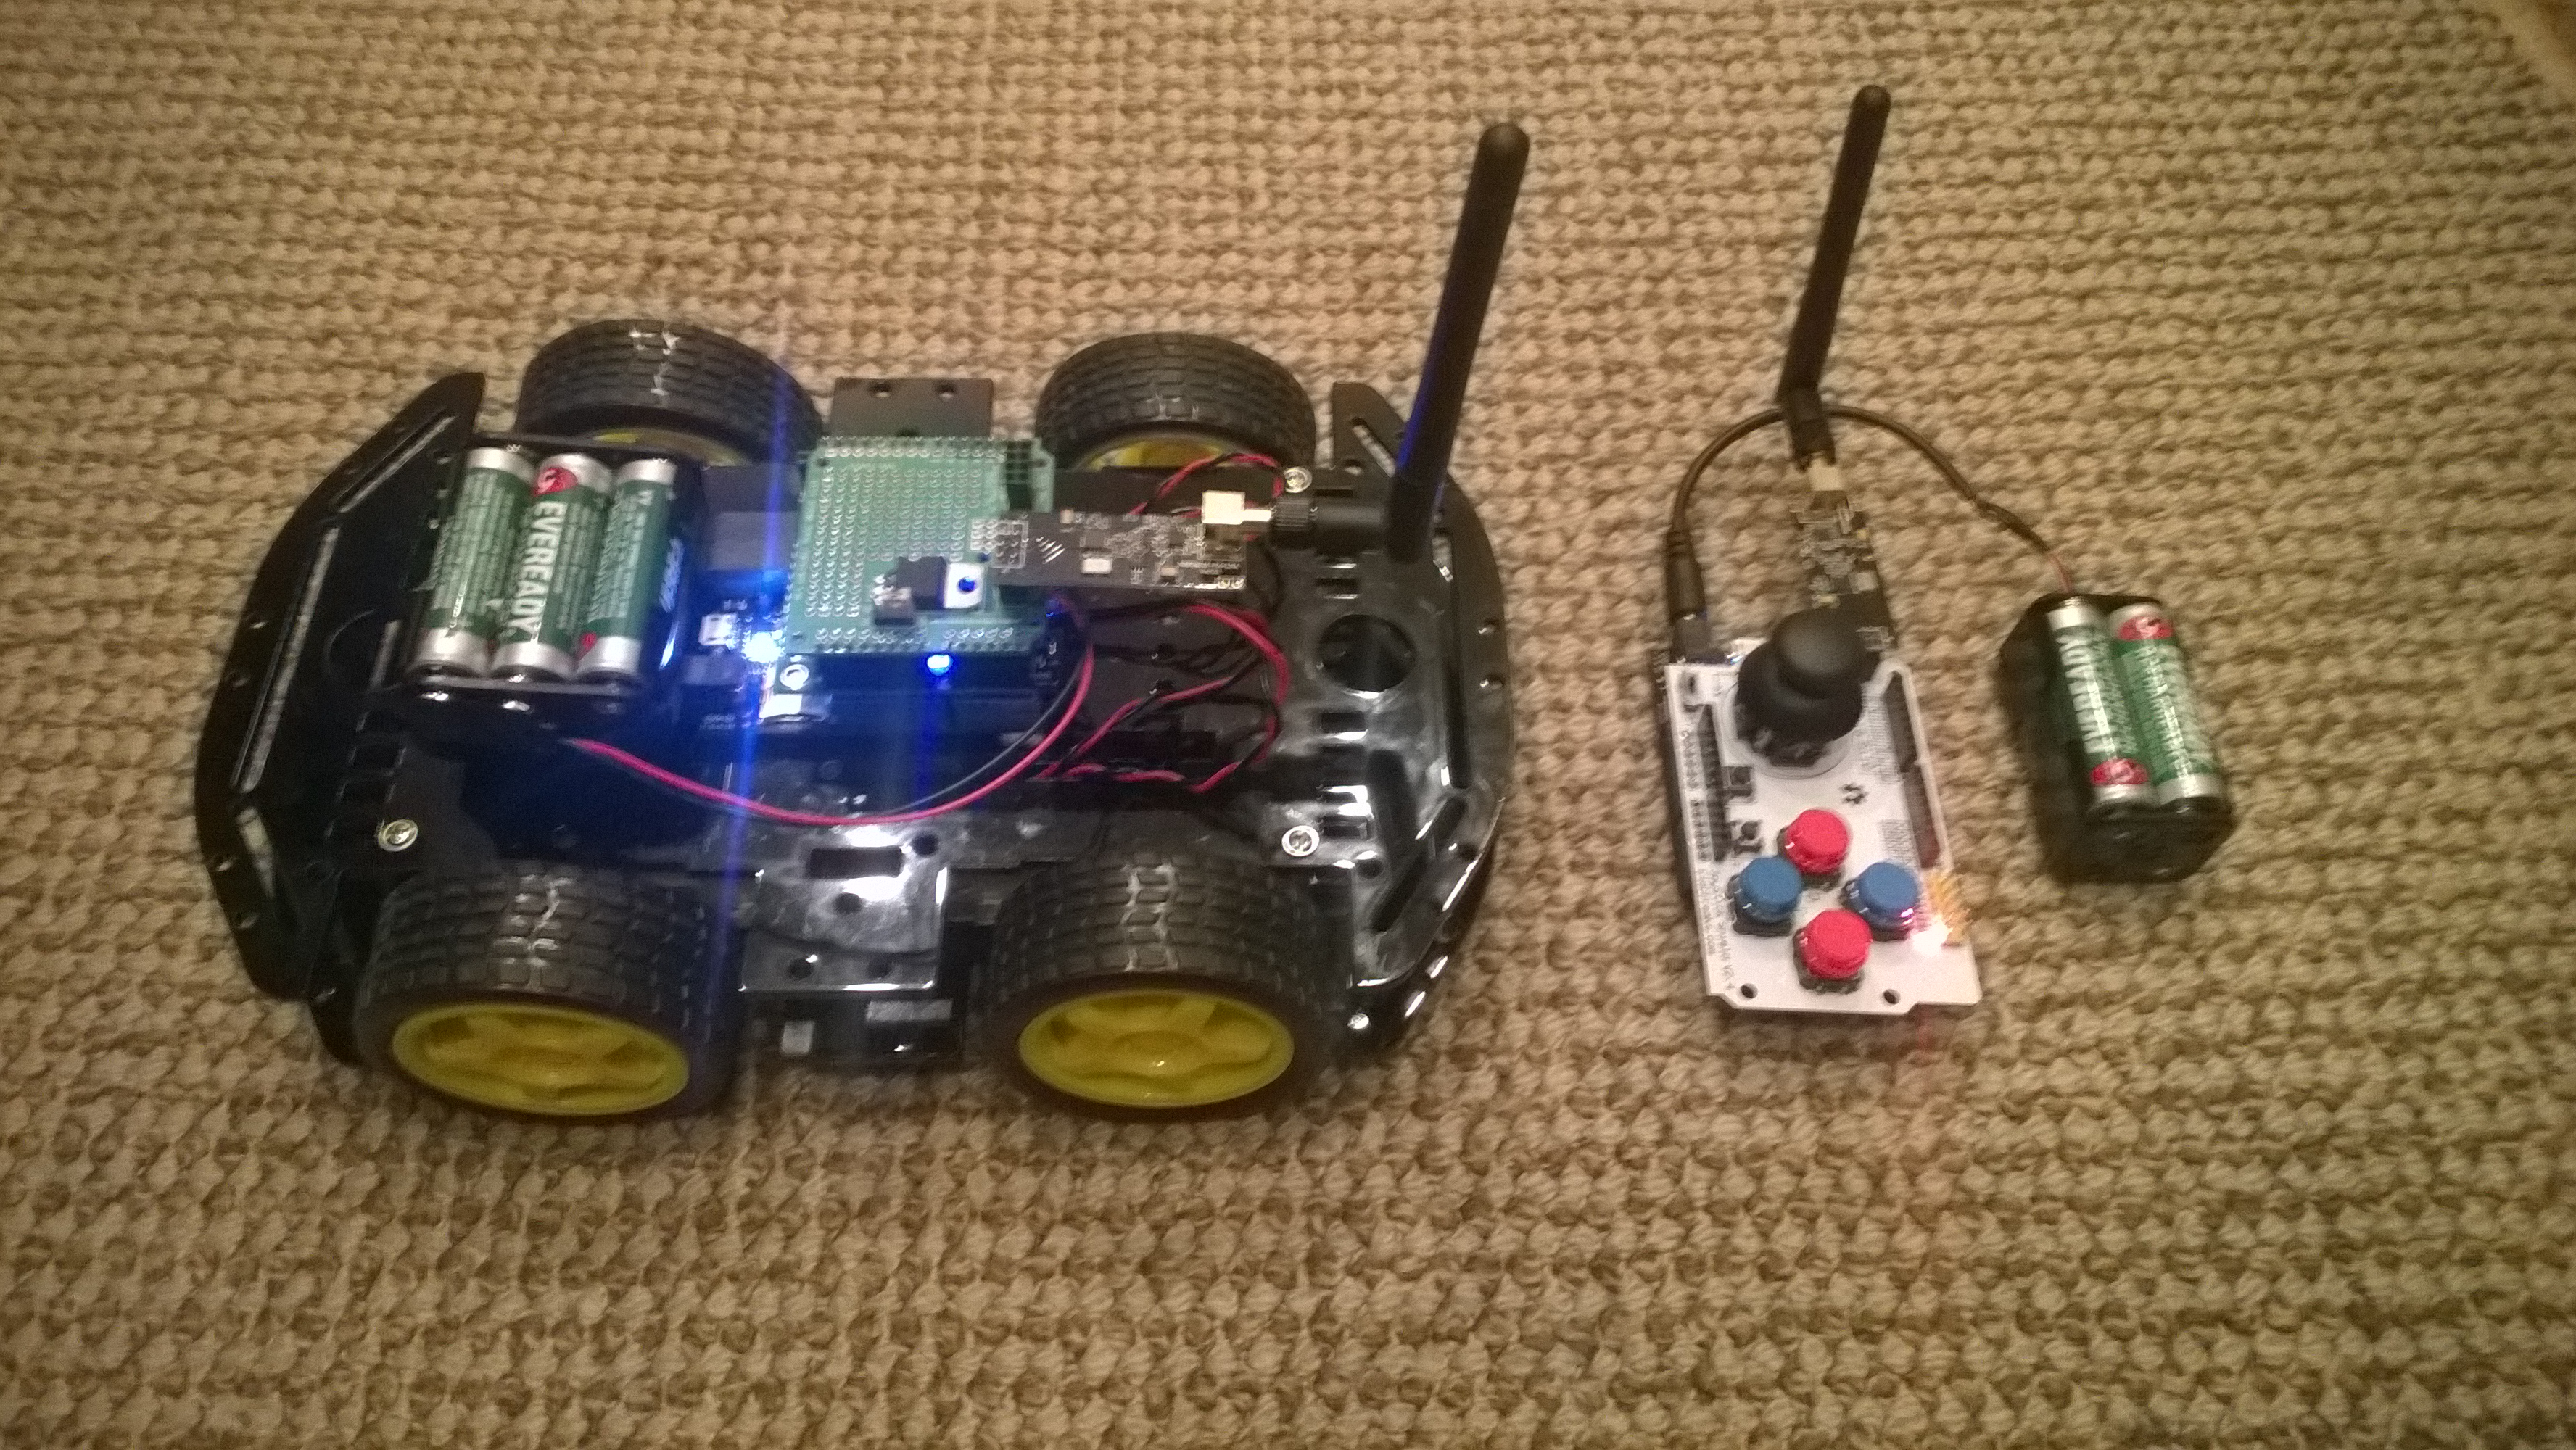 how to build a remote control robot from scratch